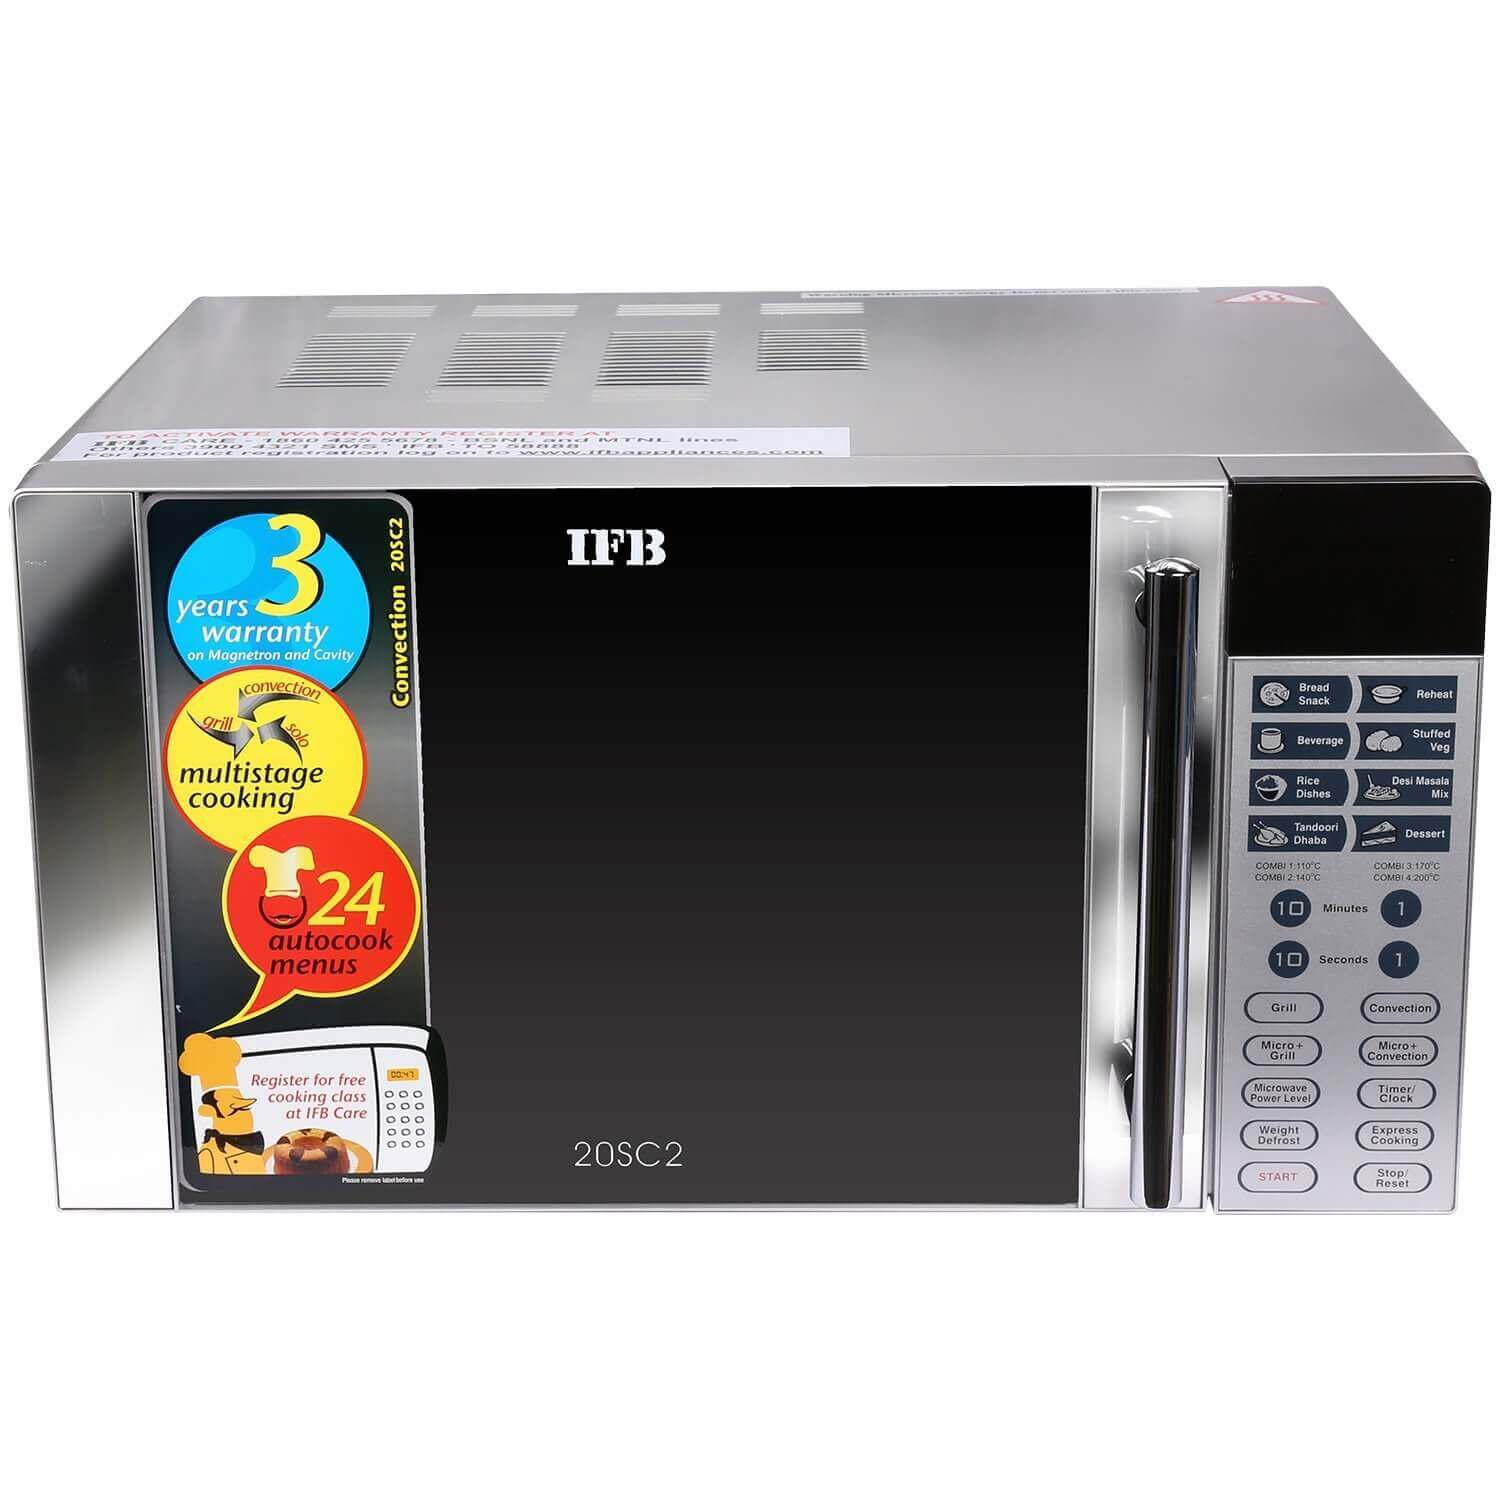 Best microwave ovens under 10,000 ifb